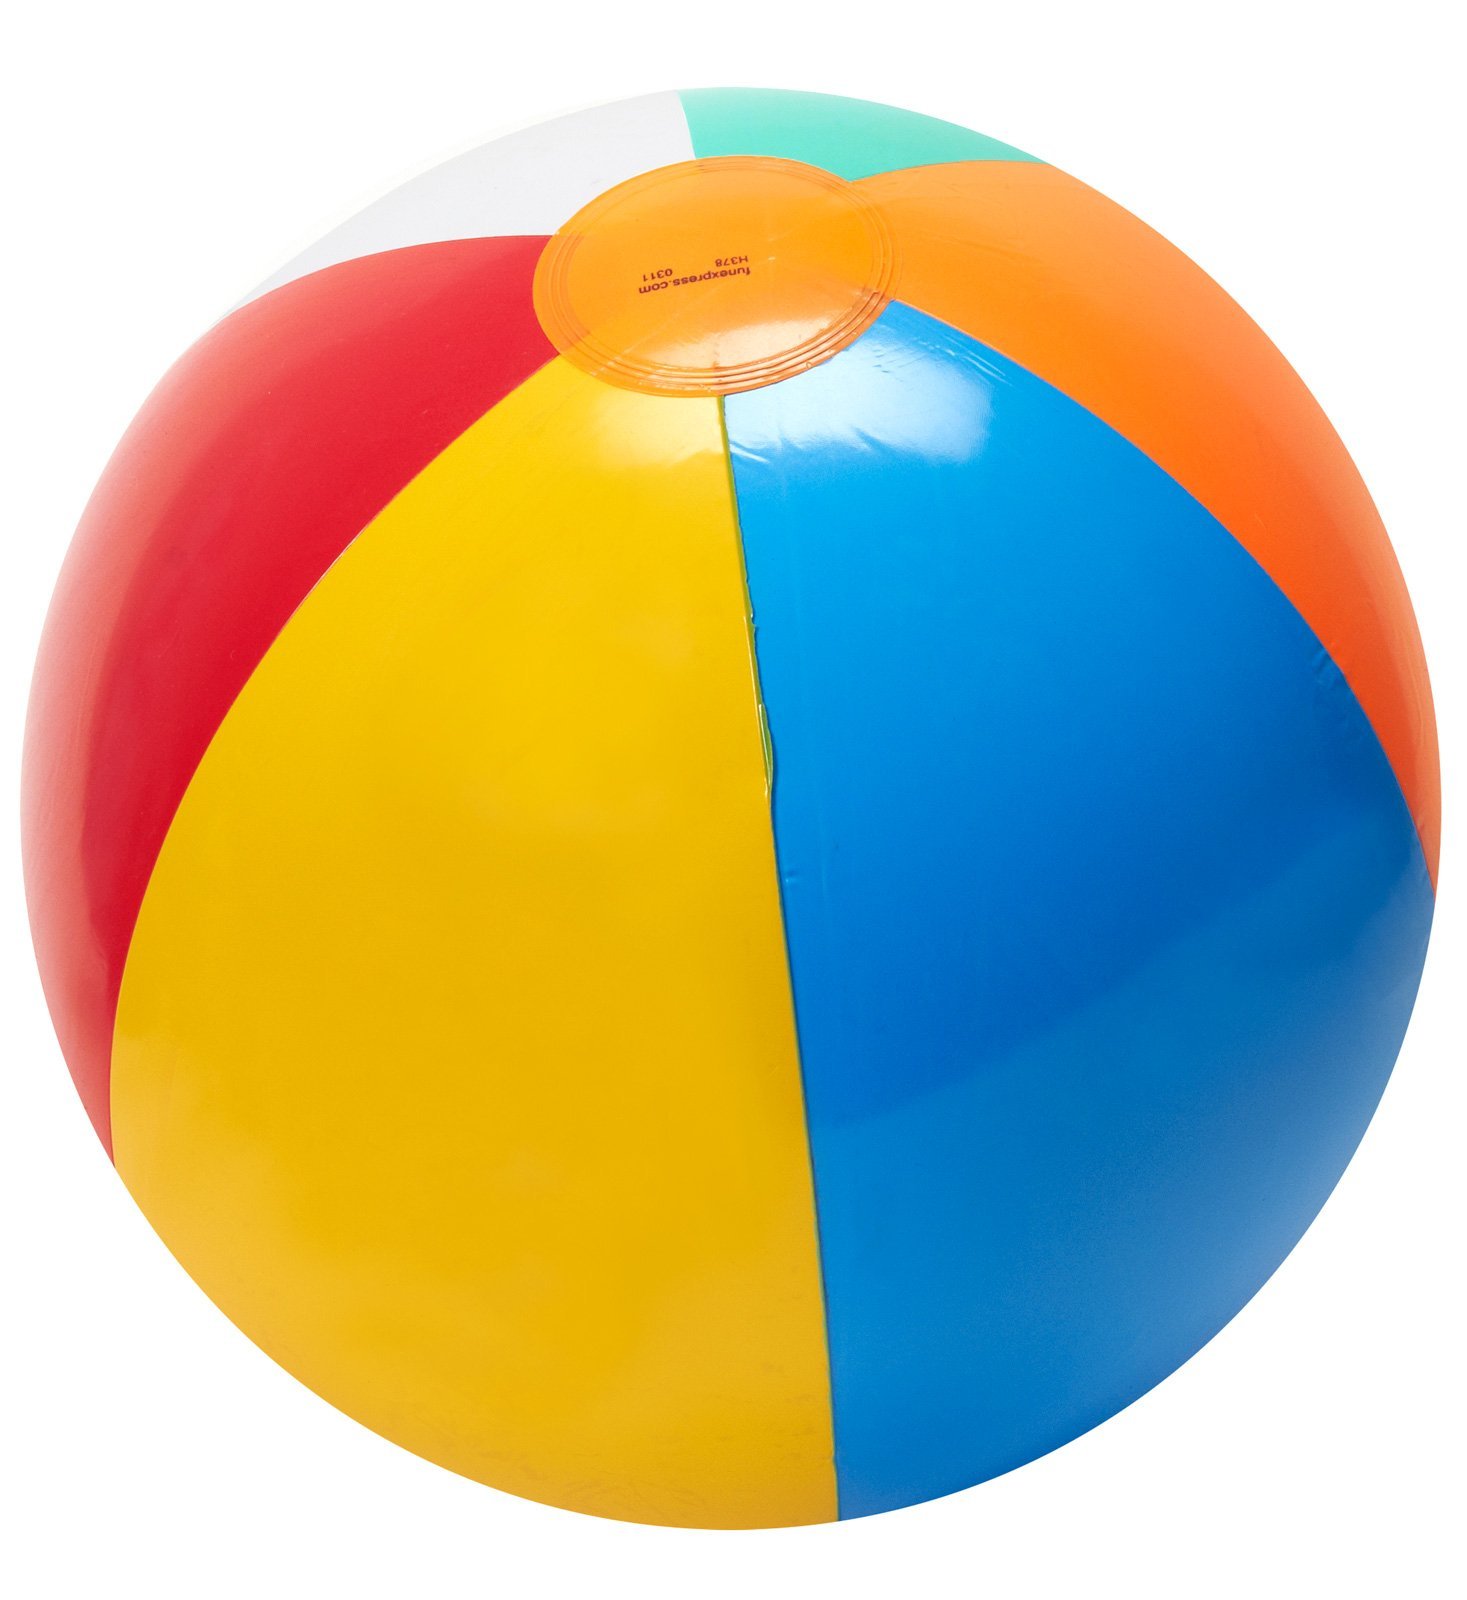 Beach Ball Photo - ClipArt Best: www.clipartbest.com/beach-ball-photo